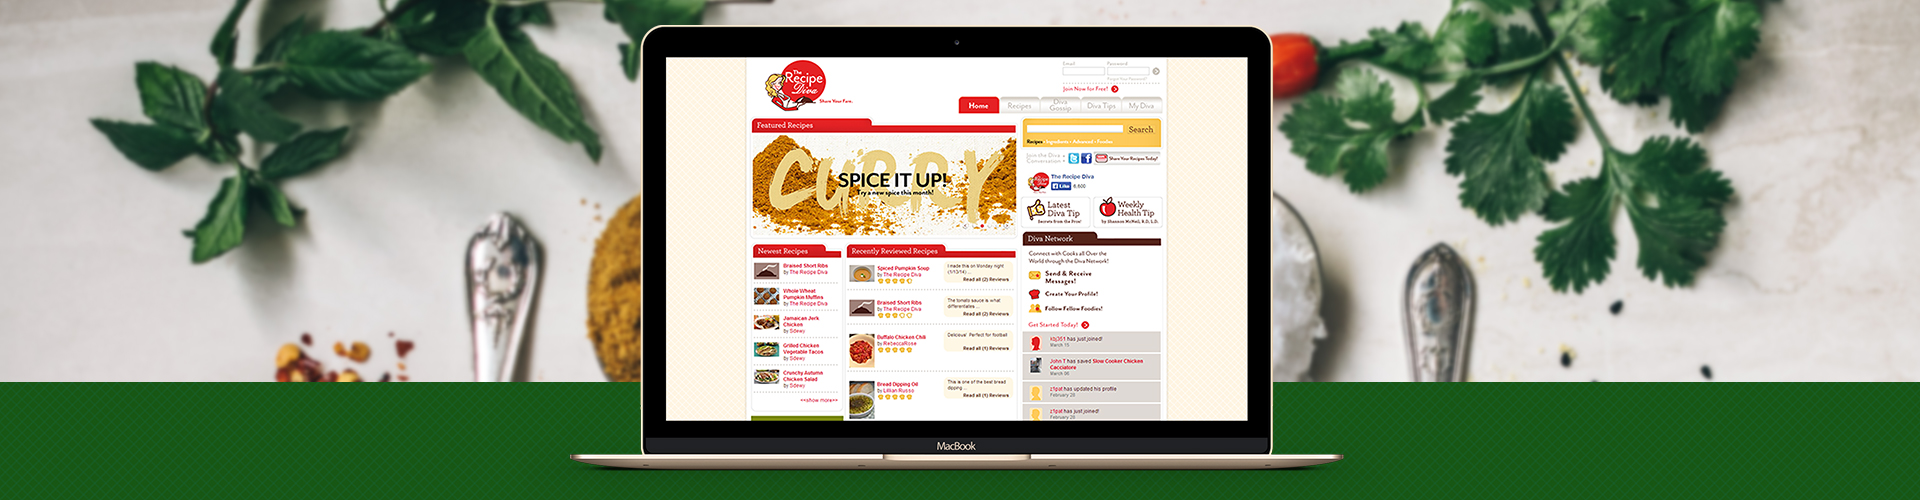 Social Network for On-line Cooking Community